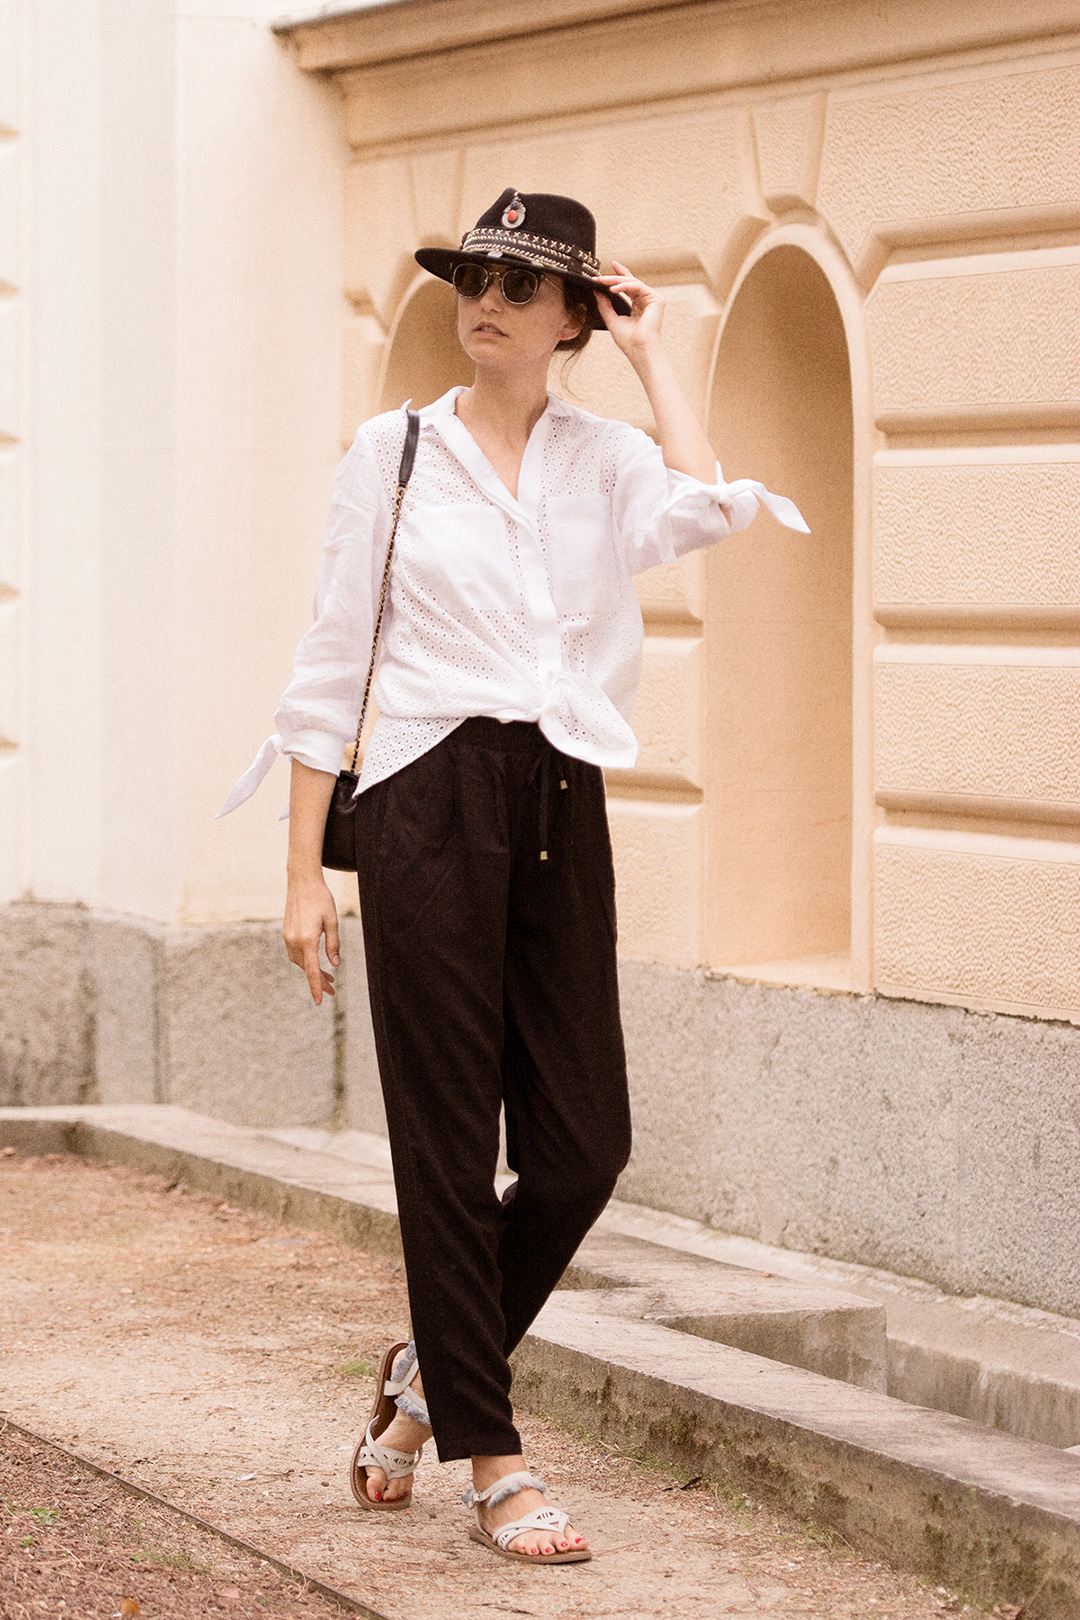 lidl-morocco-mitme-street-style-color-web-07